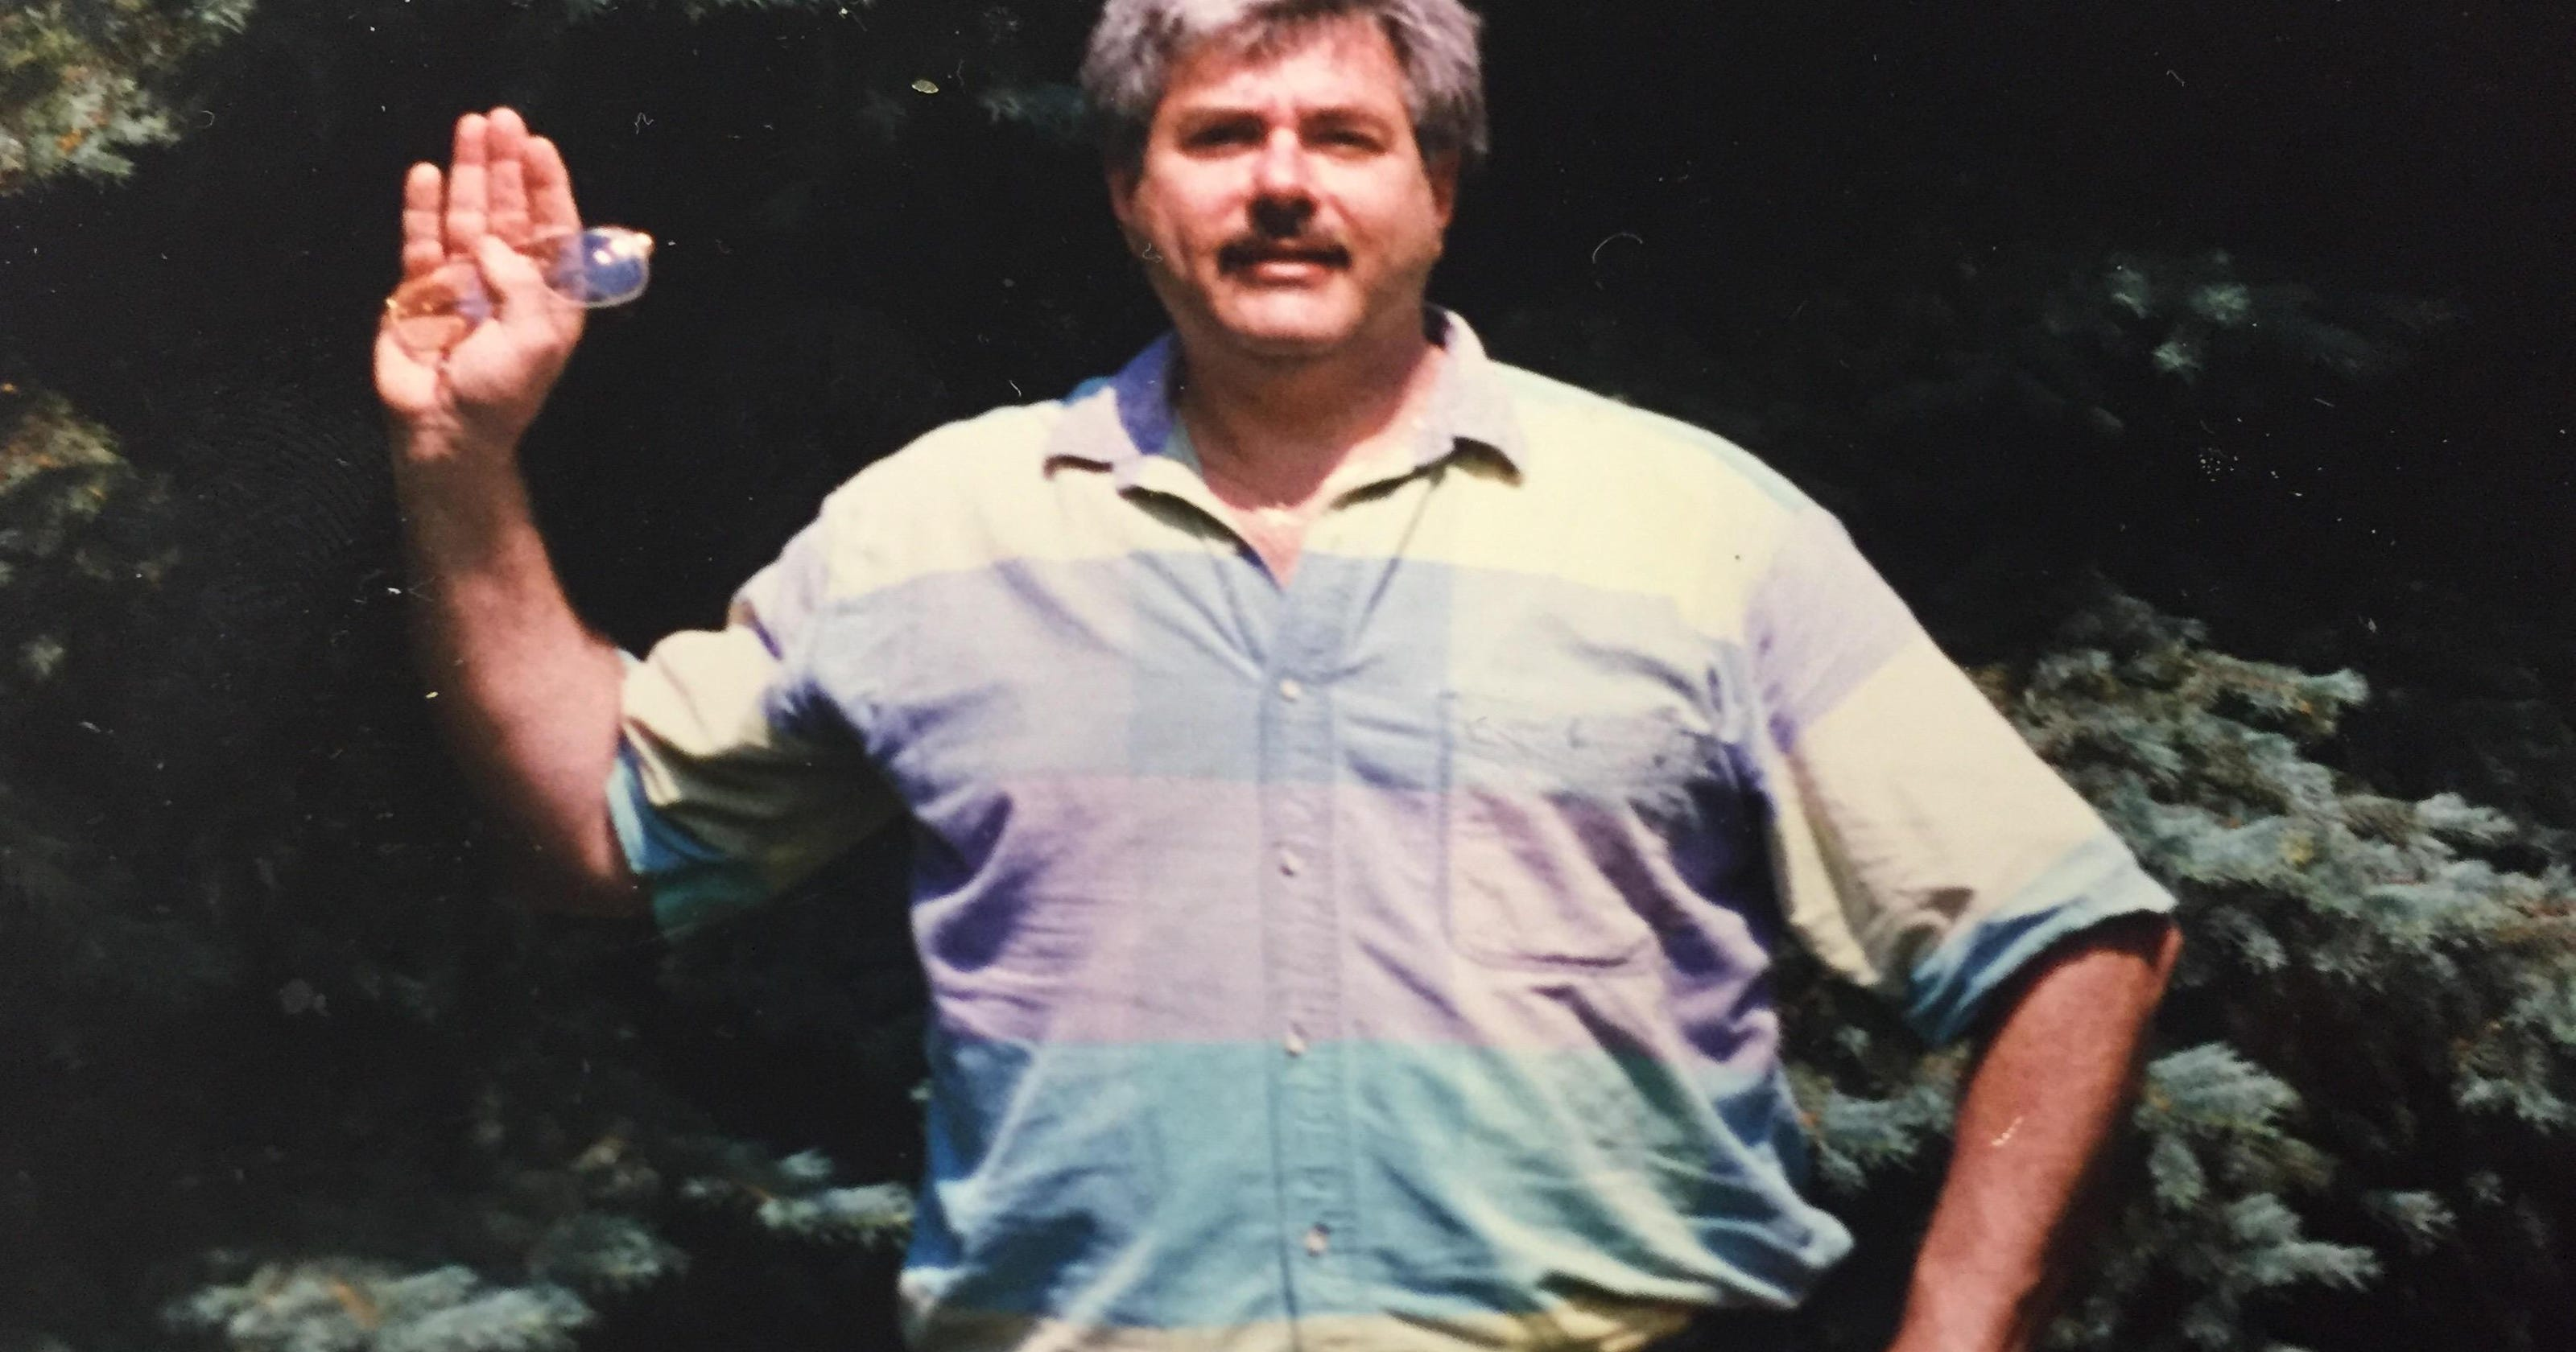 20 years later: I-84 killing remains unsolved